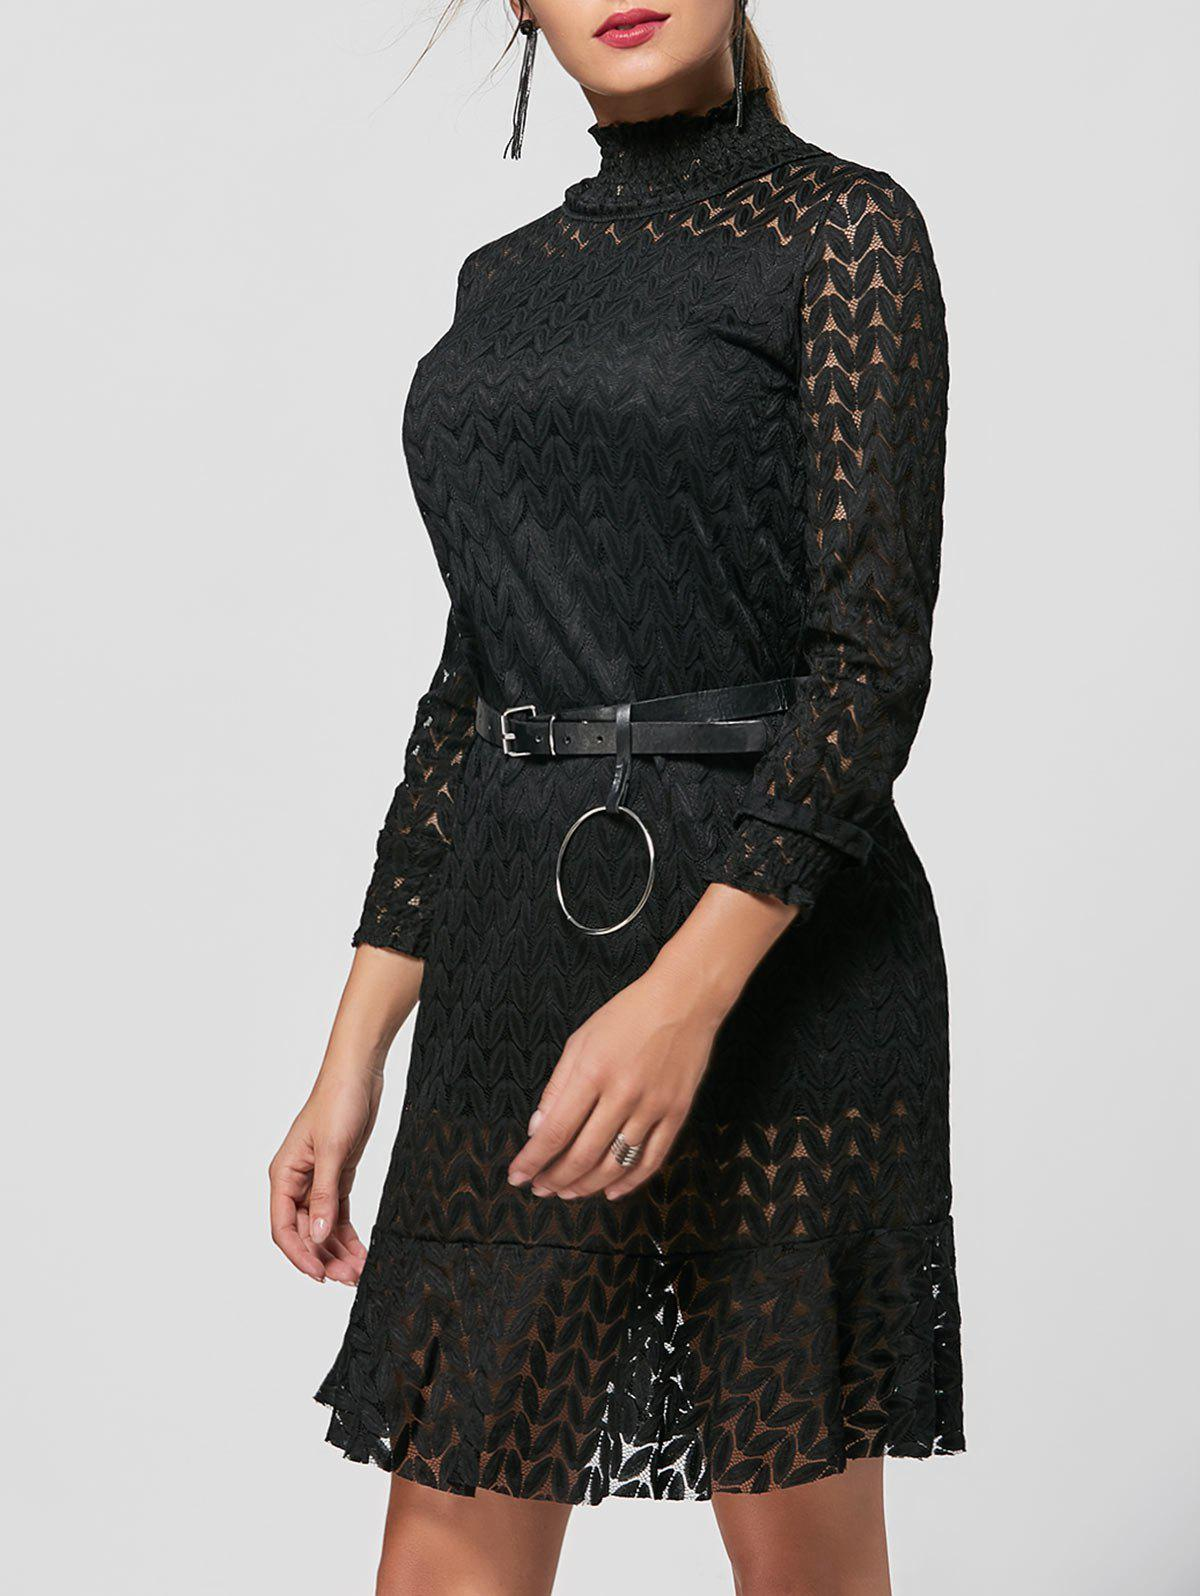 Stand Collar Flounce Shift Lace Dress - Noir M